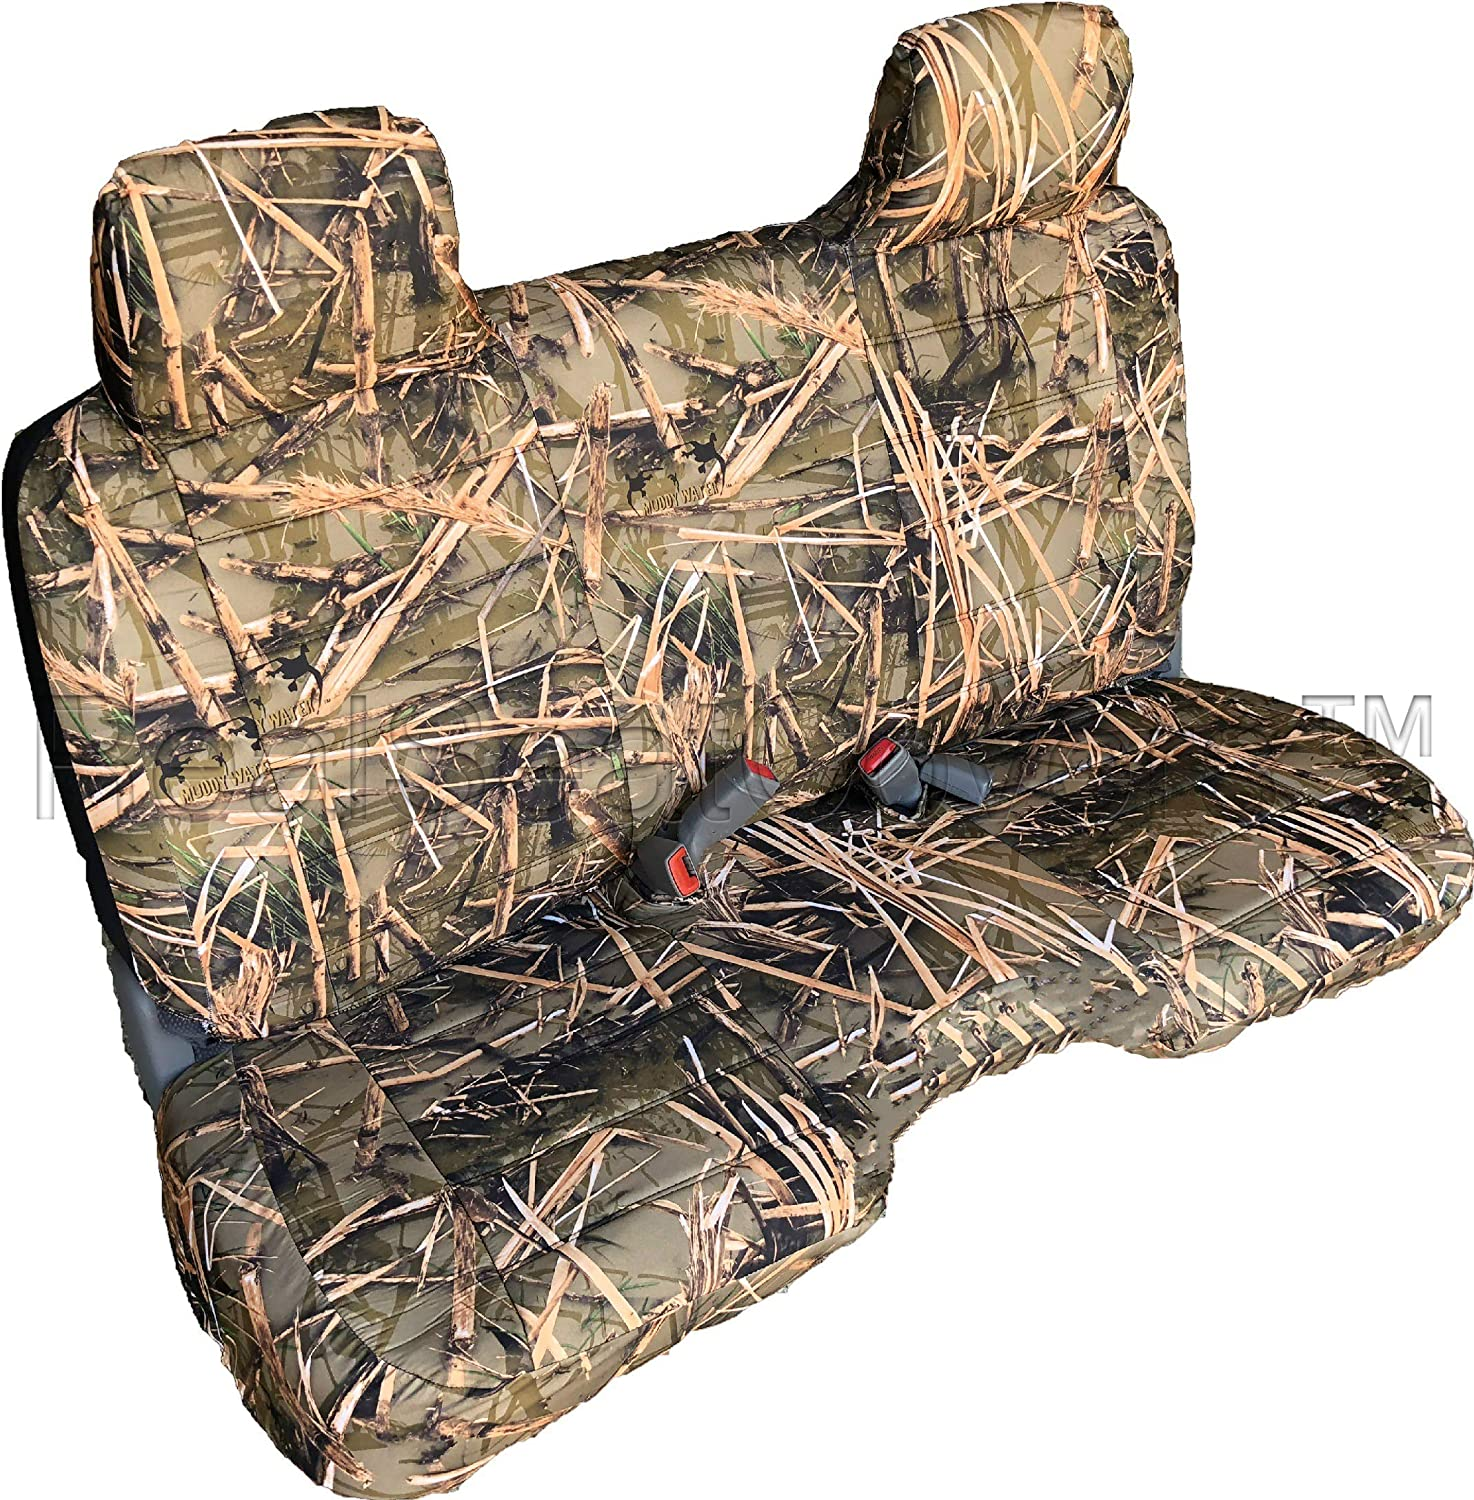 RealSeatCovers 3 Layer Seat Cover for 1993 Toyota Pickup Front Bench 8mm Thick A25 Molded Headrest Small Notched Cushion (Muddy Water Camo)